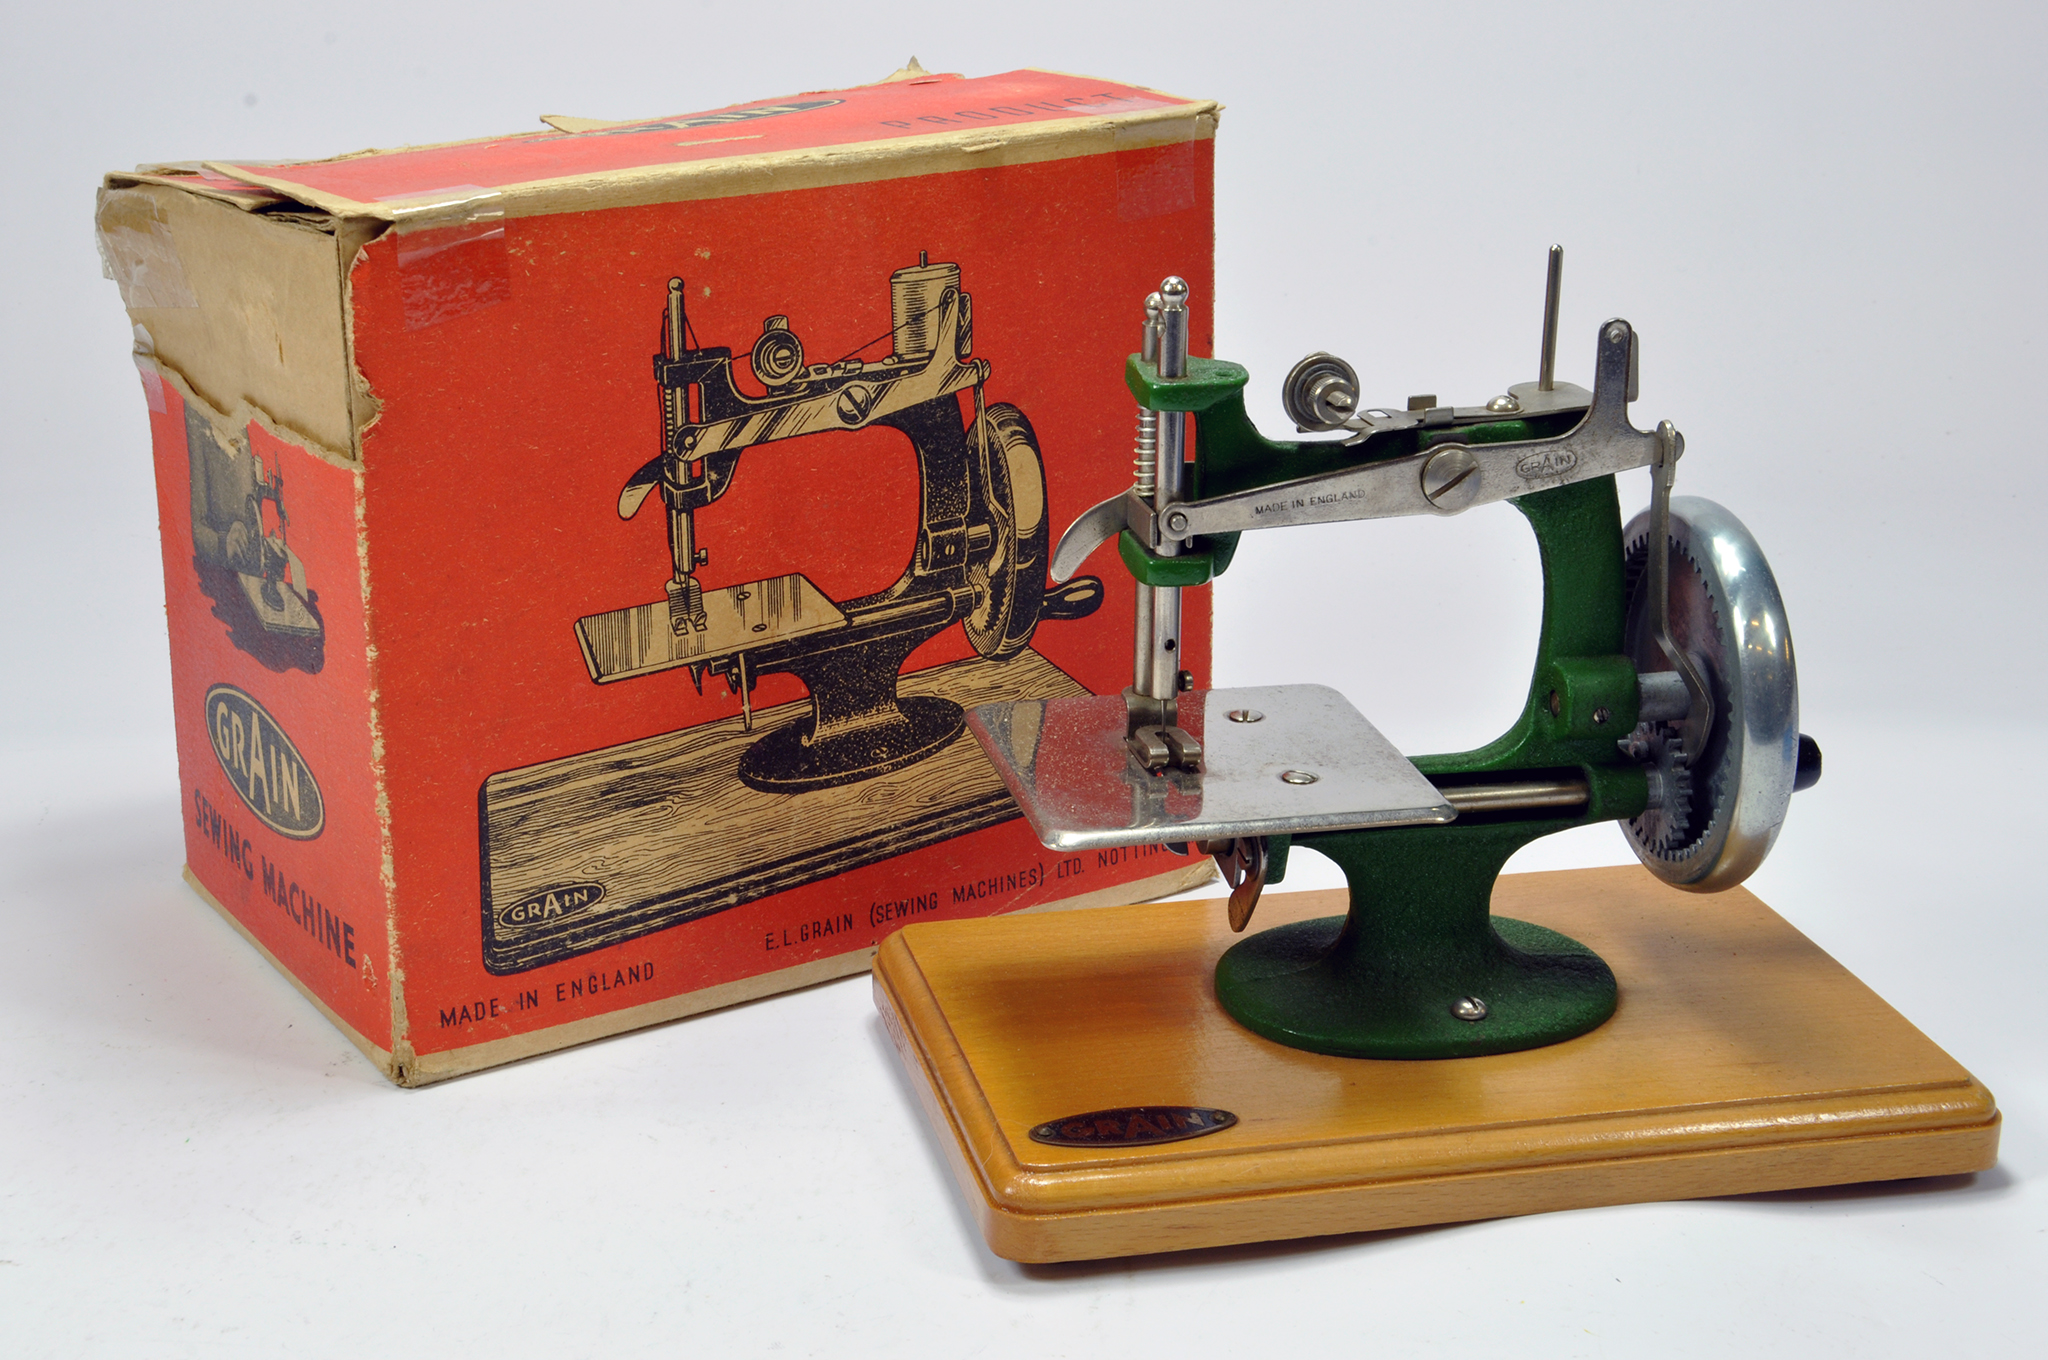 Lot 1181 - A Grain Metal Made Toy Sewing Machine. This well preserved issue appears complete and comes with